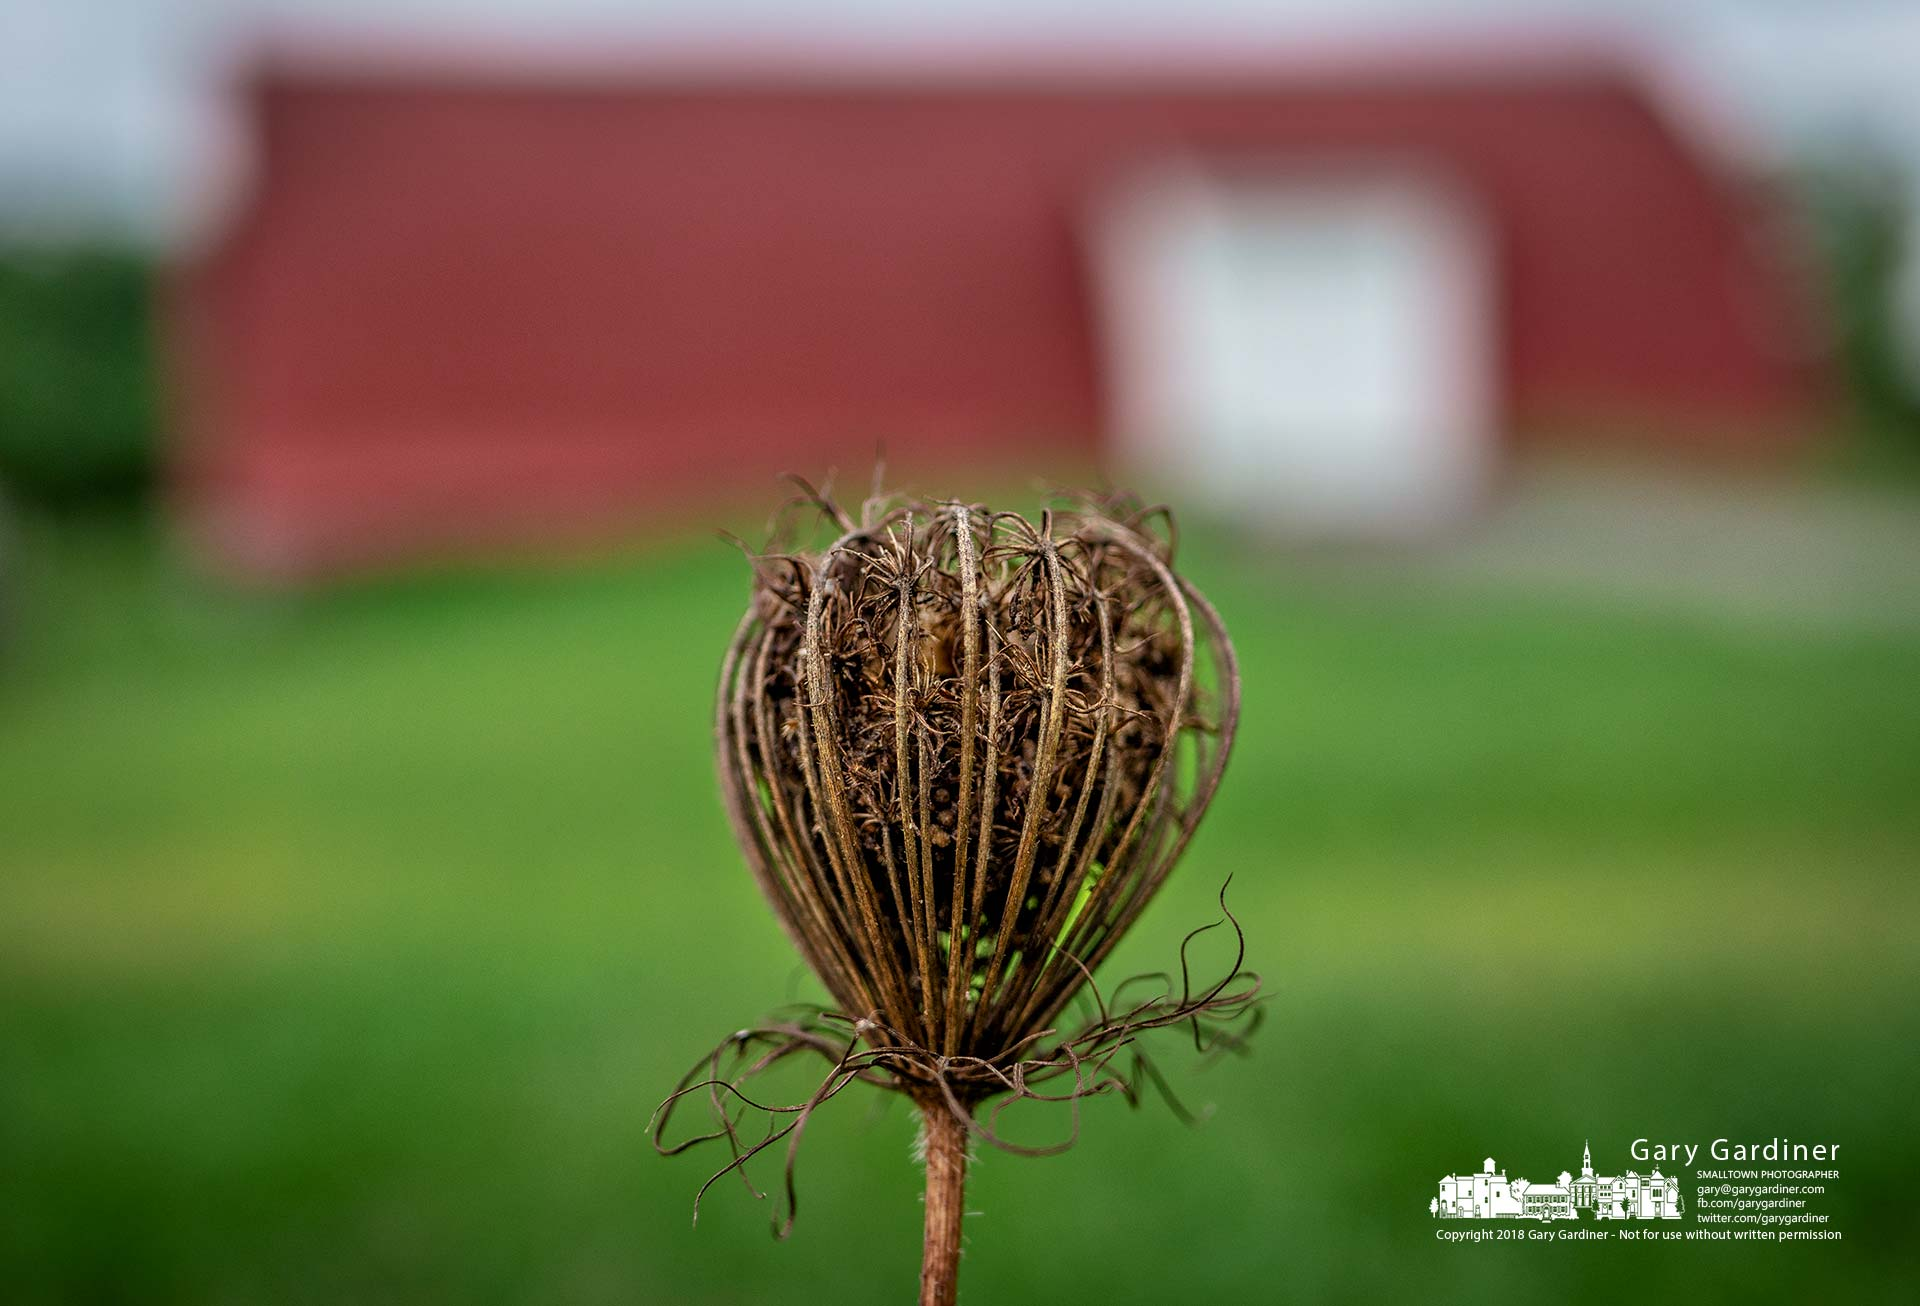 A dried Queen Anne's Lace flower turning to seed sits in front of the barn on the Braun Farm property alongCooper Road. My final Photo for Sept. 17, 2018.